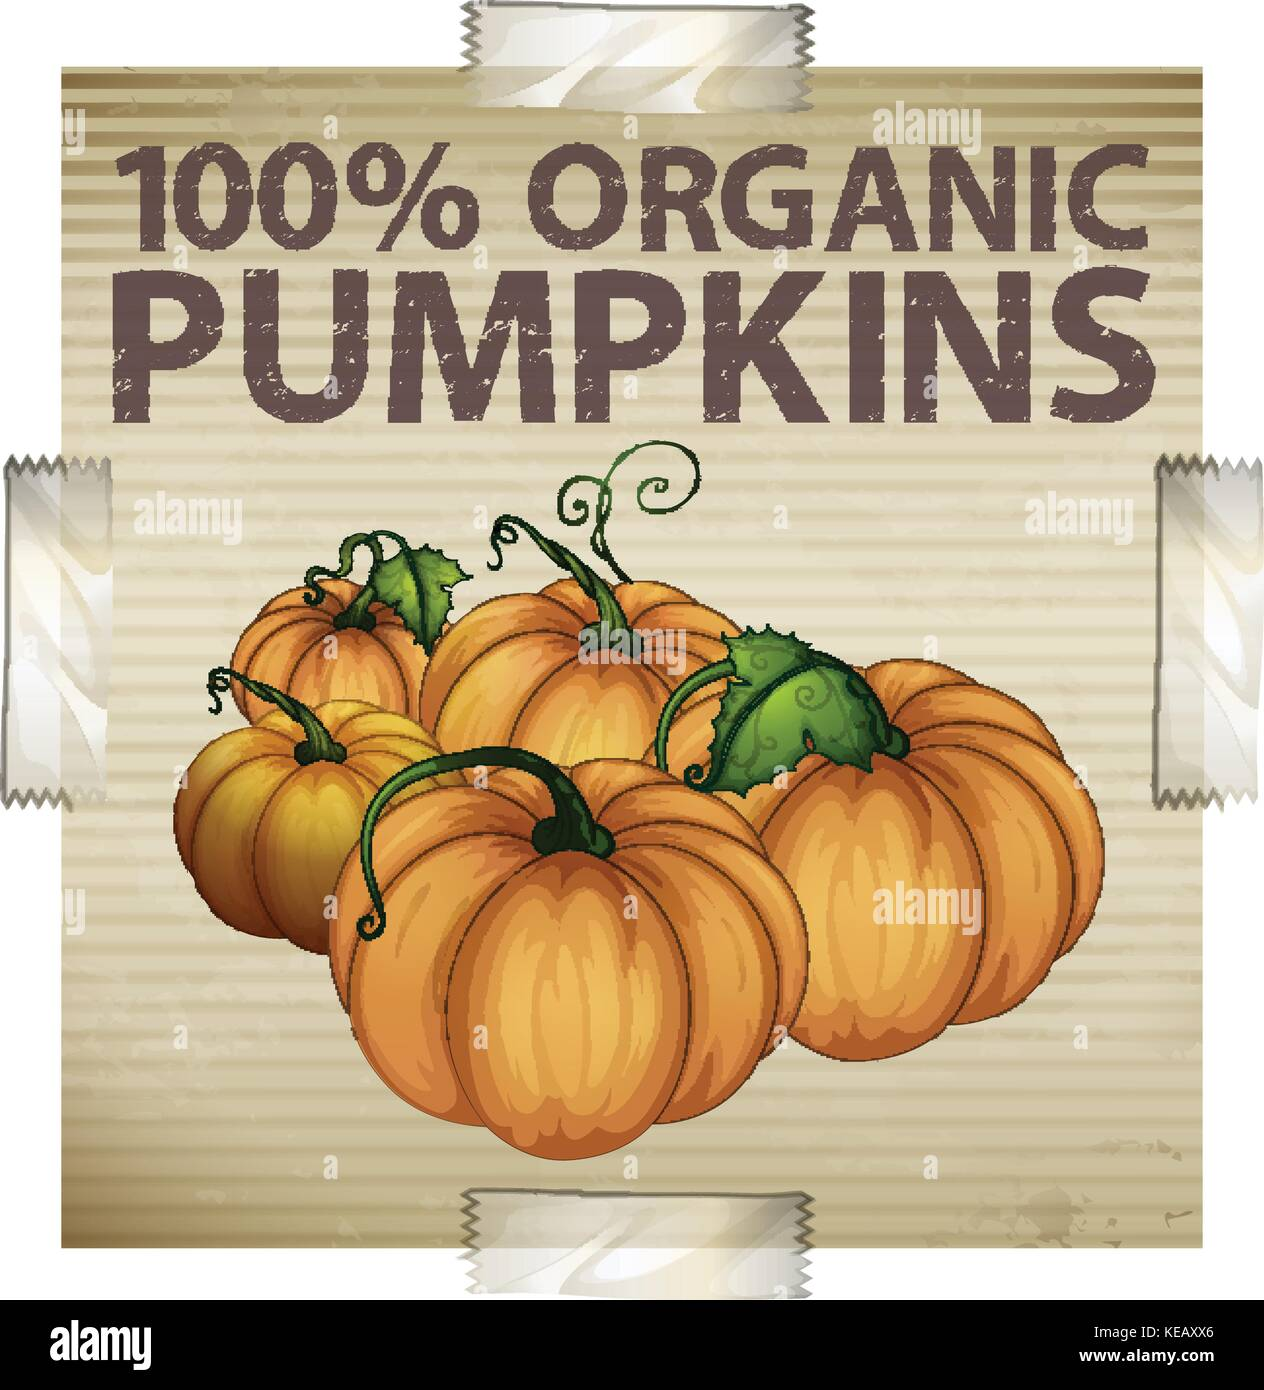 Advertisement for organic pumpkins - Stock Vector